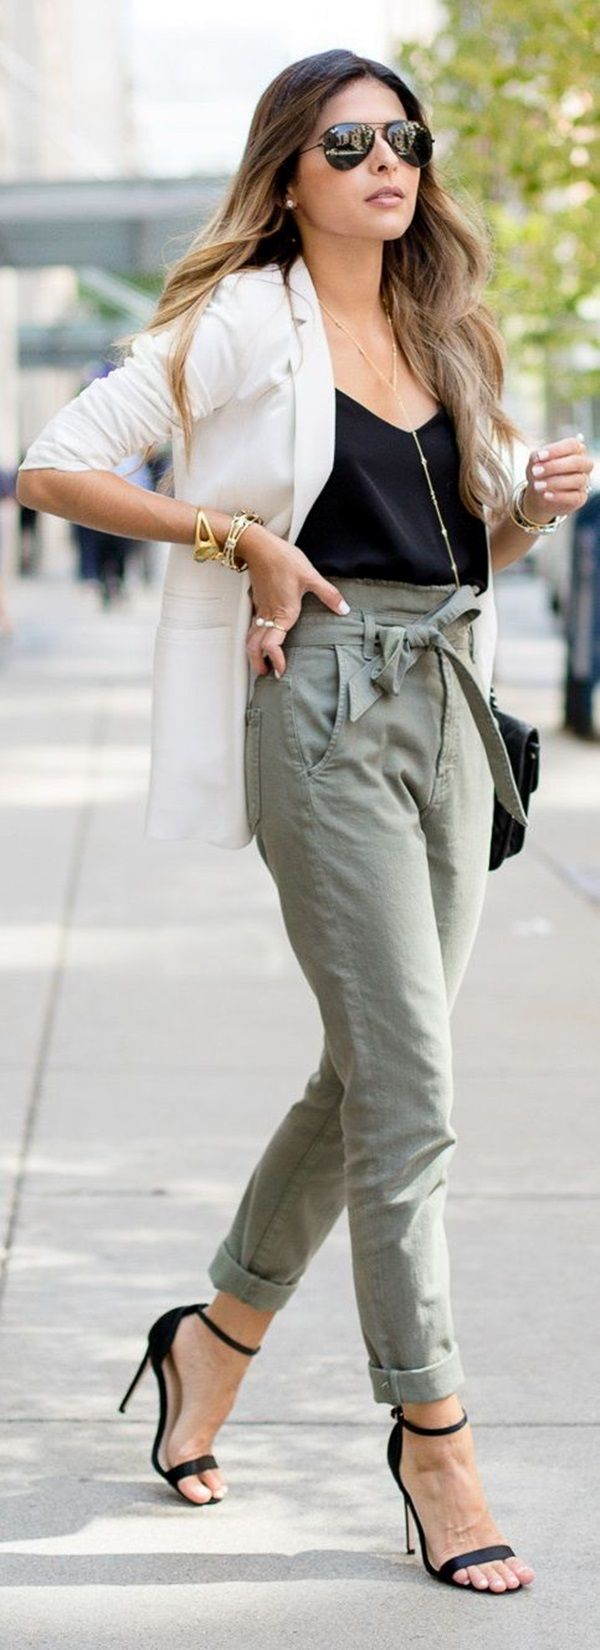 Find More at => http://feedproxy.google.com/~r/amazingoutfits/~3/SaFJNVJ5ps0/AmazingOutfits.page